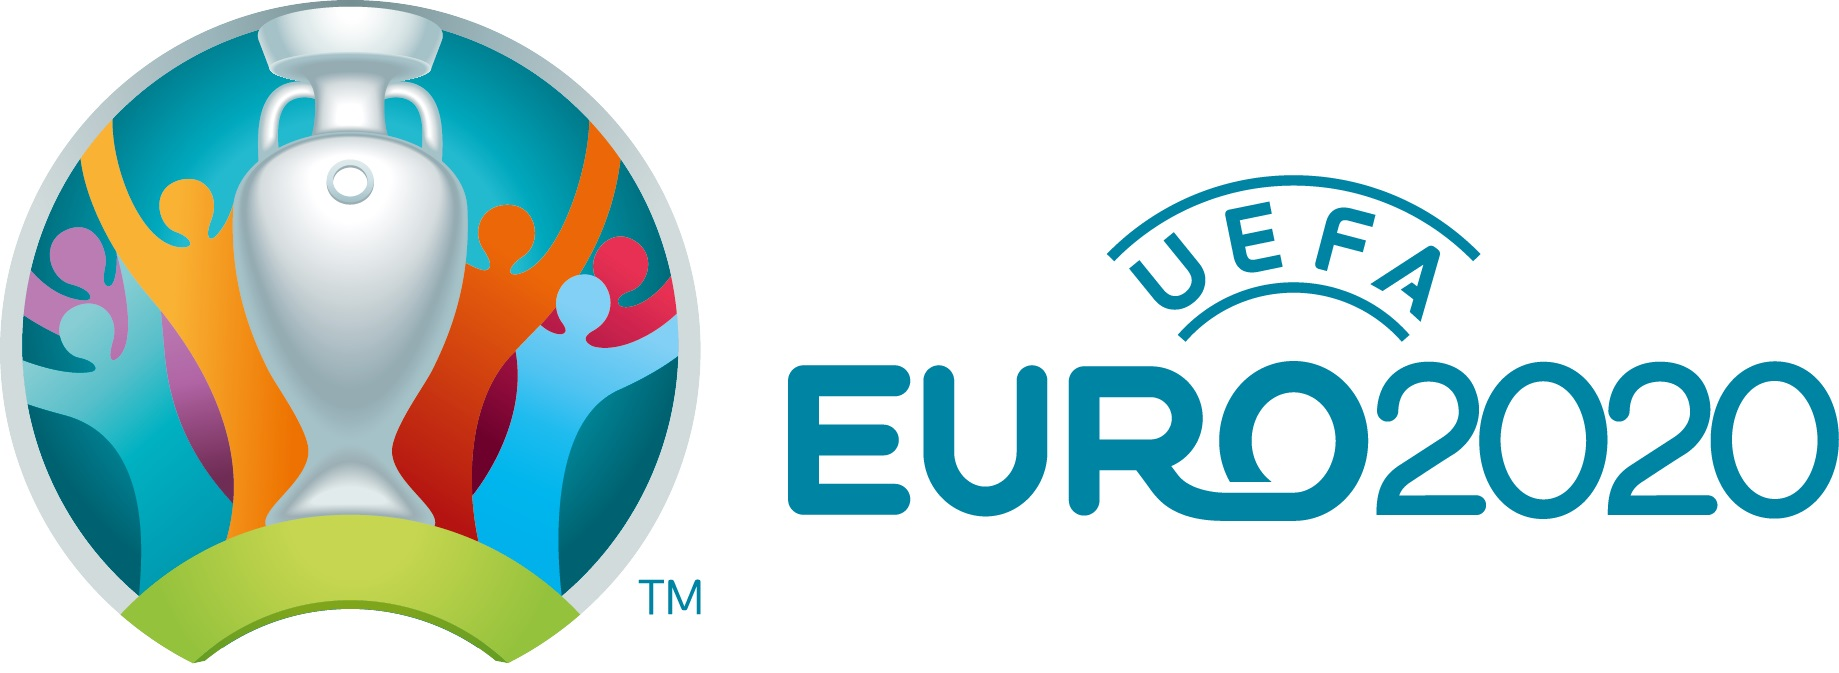 uefa cio how to build pan continental infrastructure for euro 2020 uefa cio how to build pan continental